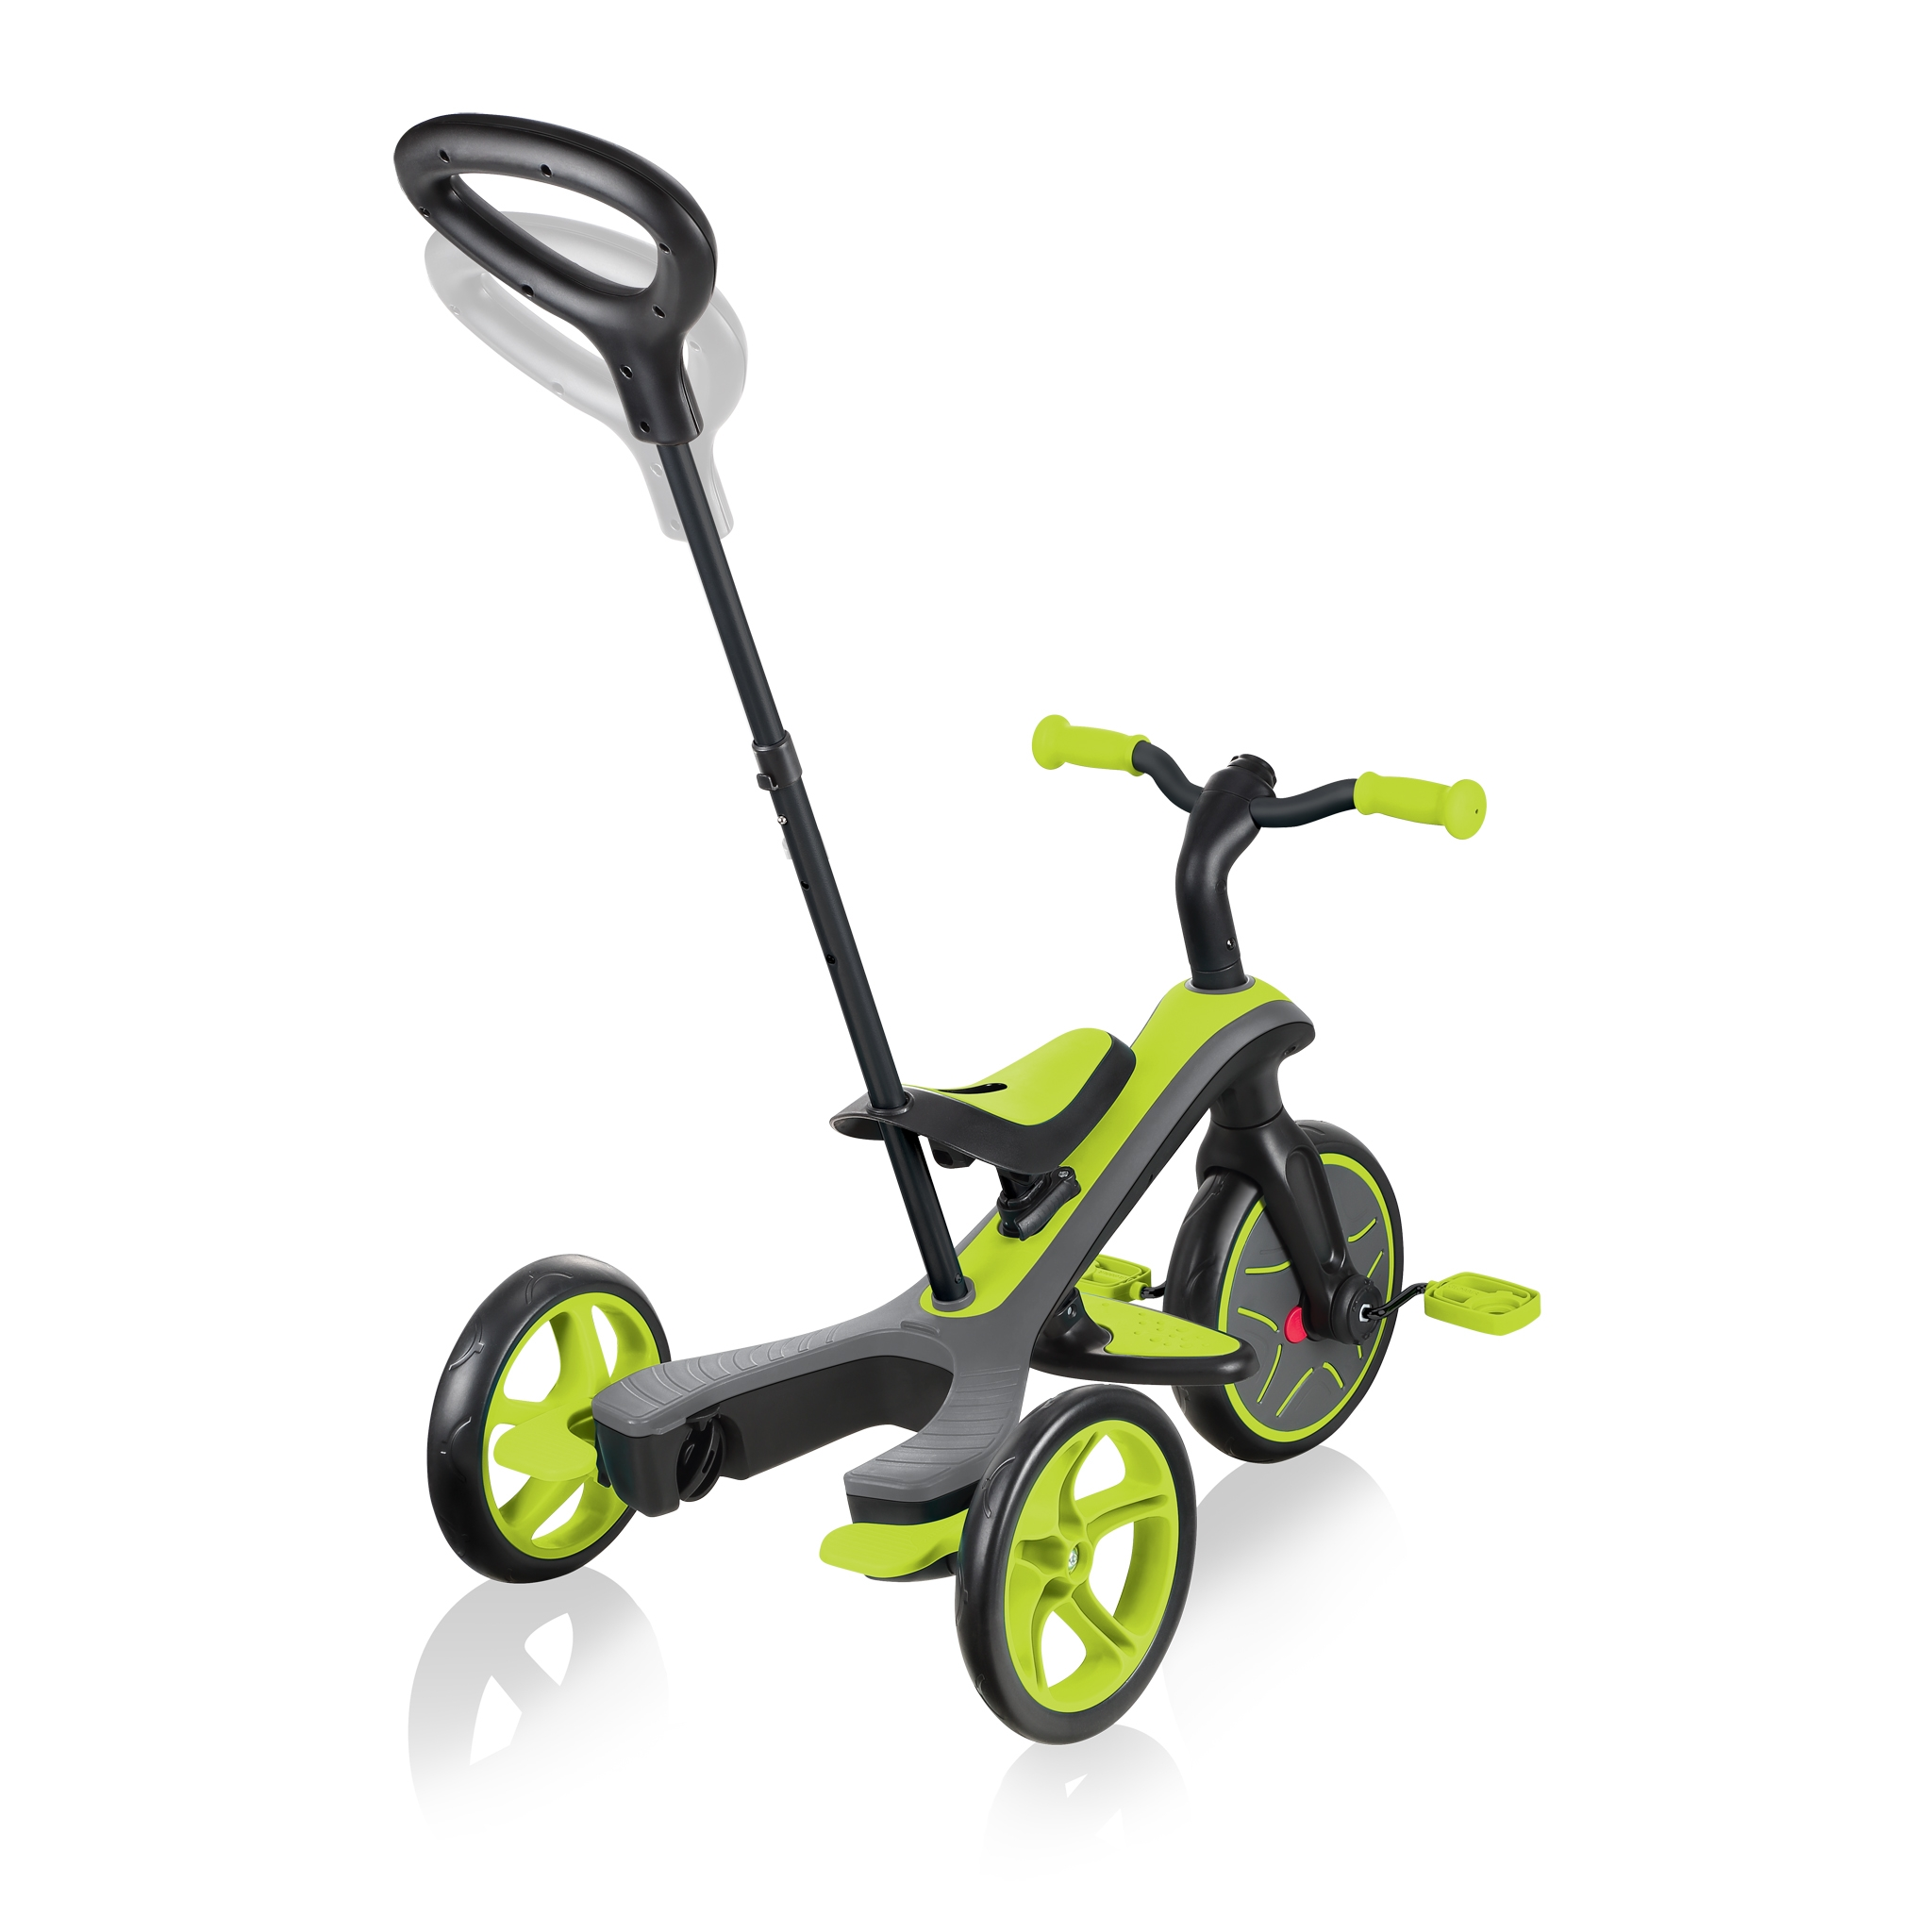 Globber-EXPLORER-TRIKE-4in1-all-in-one-baby-tricycle-and-kids-balance-bike-with-2-height-adjustable-parent-handle_lime-green